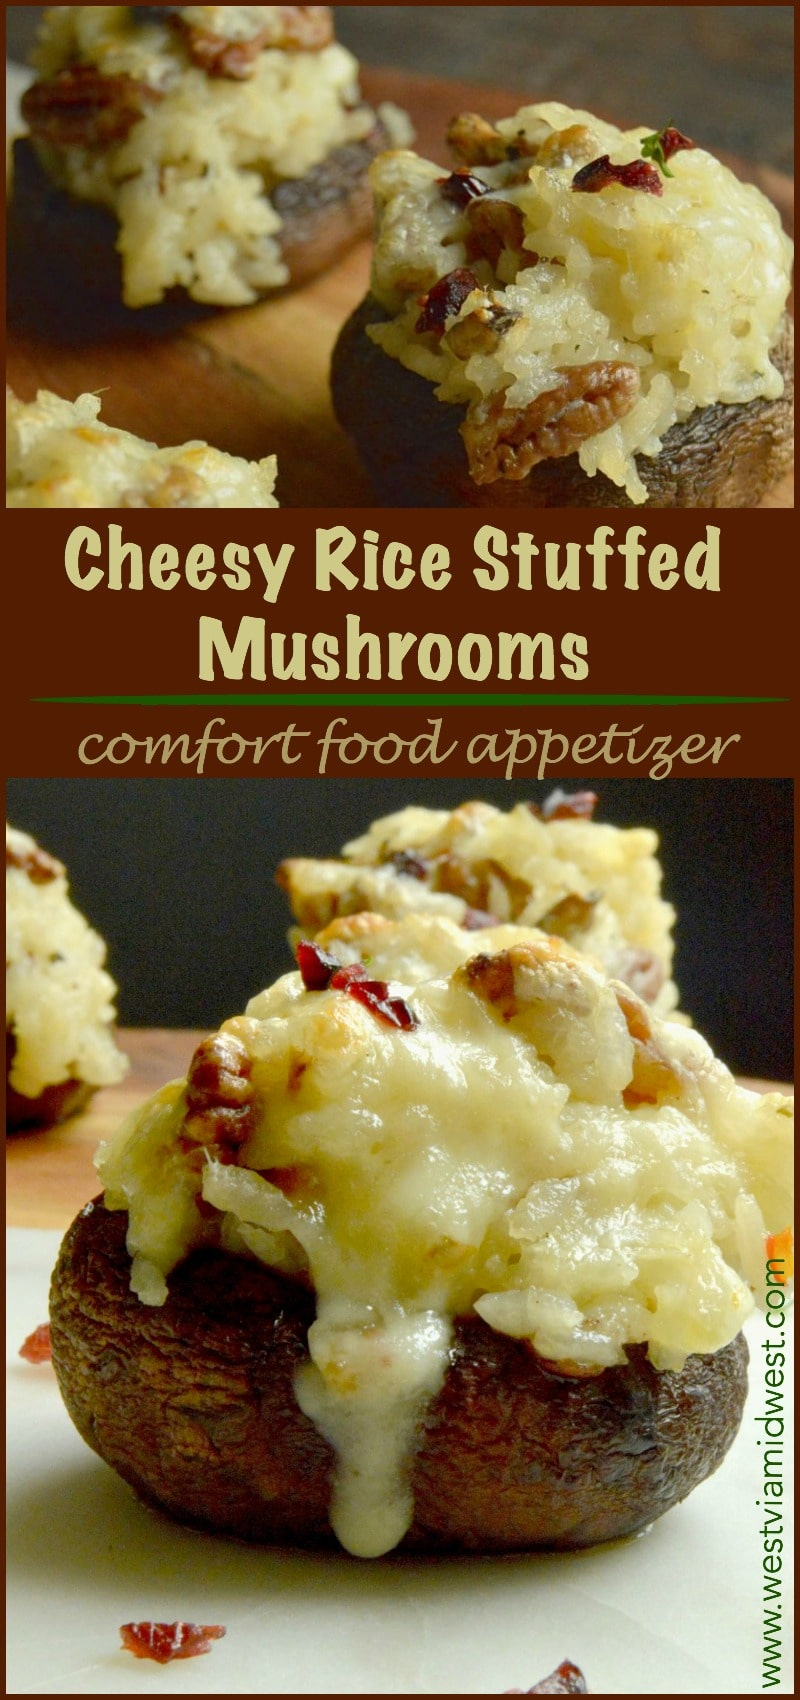 Cheesy Rice Stuffed Mushrooms: Melted cheese stirred into rice with pecans, cranberries all stuffed into tender, fresh mushrooms an appetizer for your guests at any holiday party, football viewing or just for a Friday Night snack.